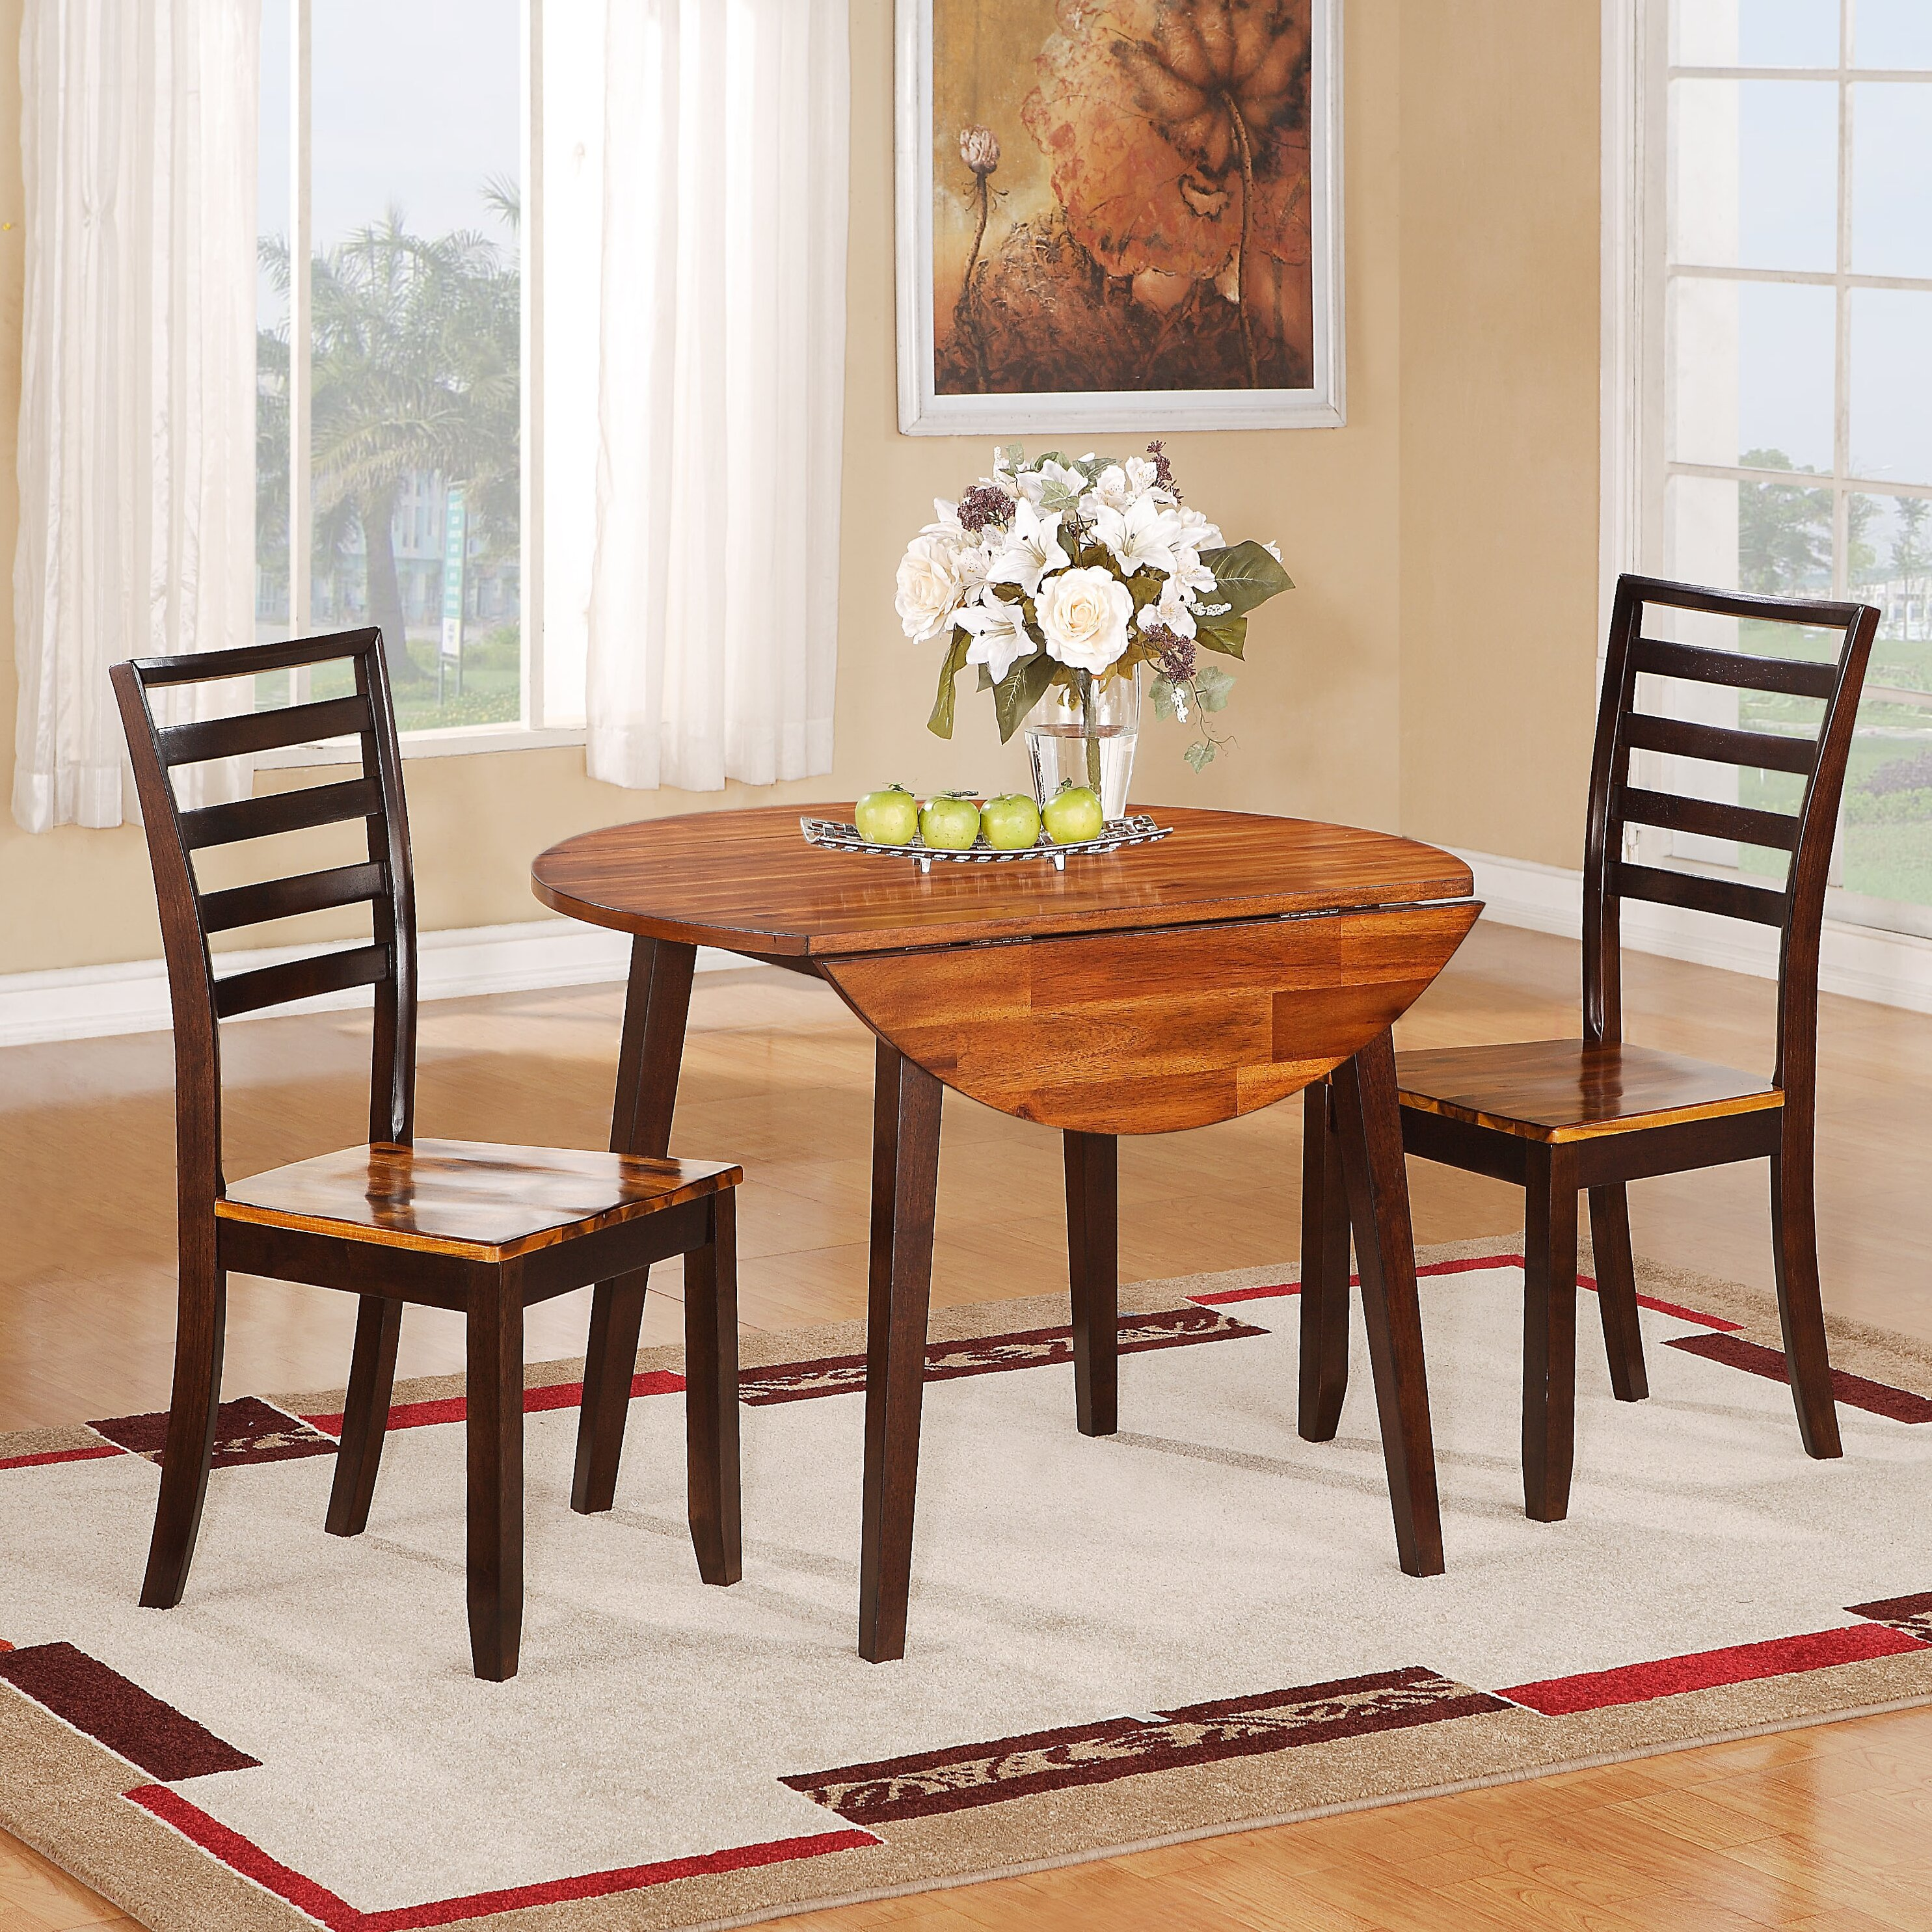 Wildon home extendable dining table reviews wayfair for Wildon home dining